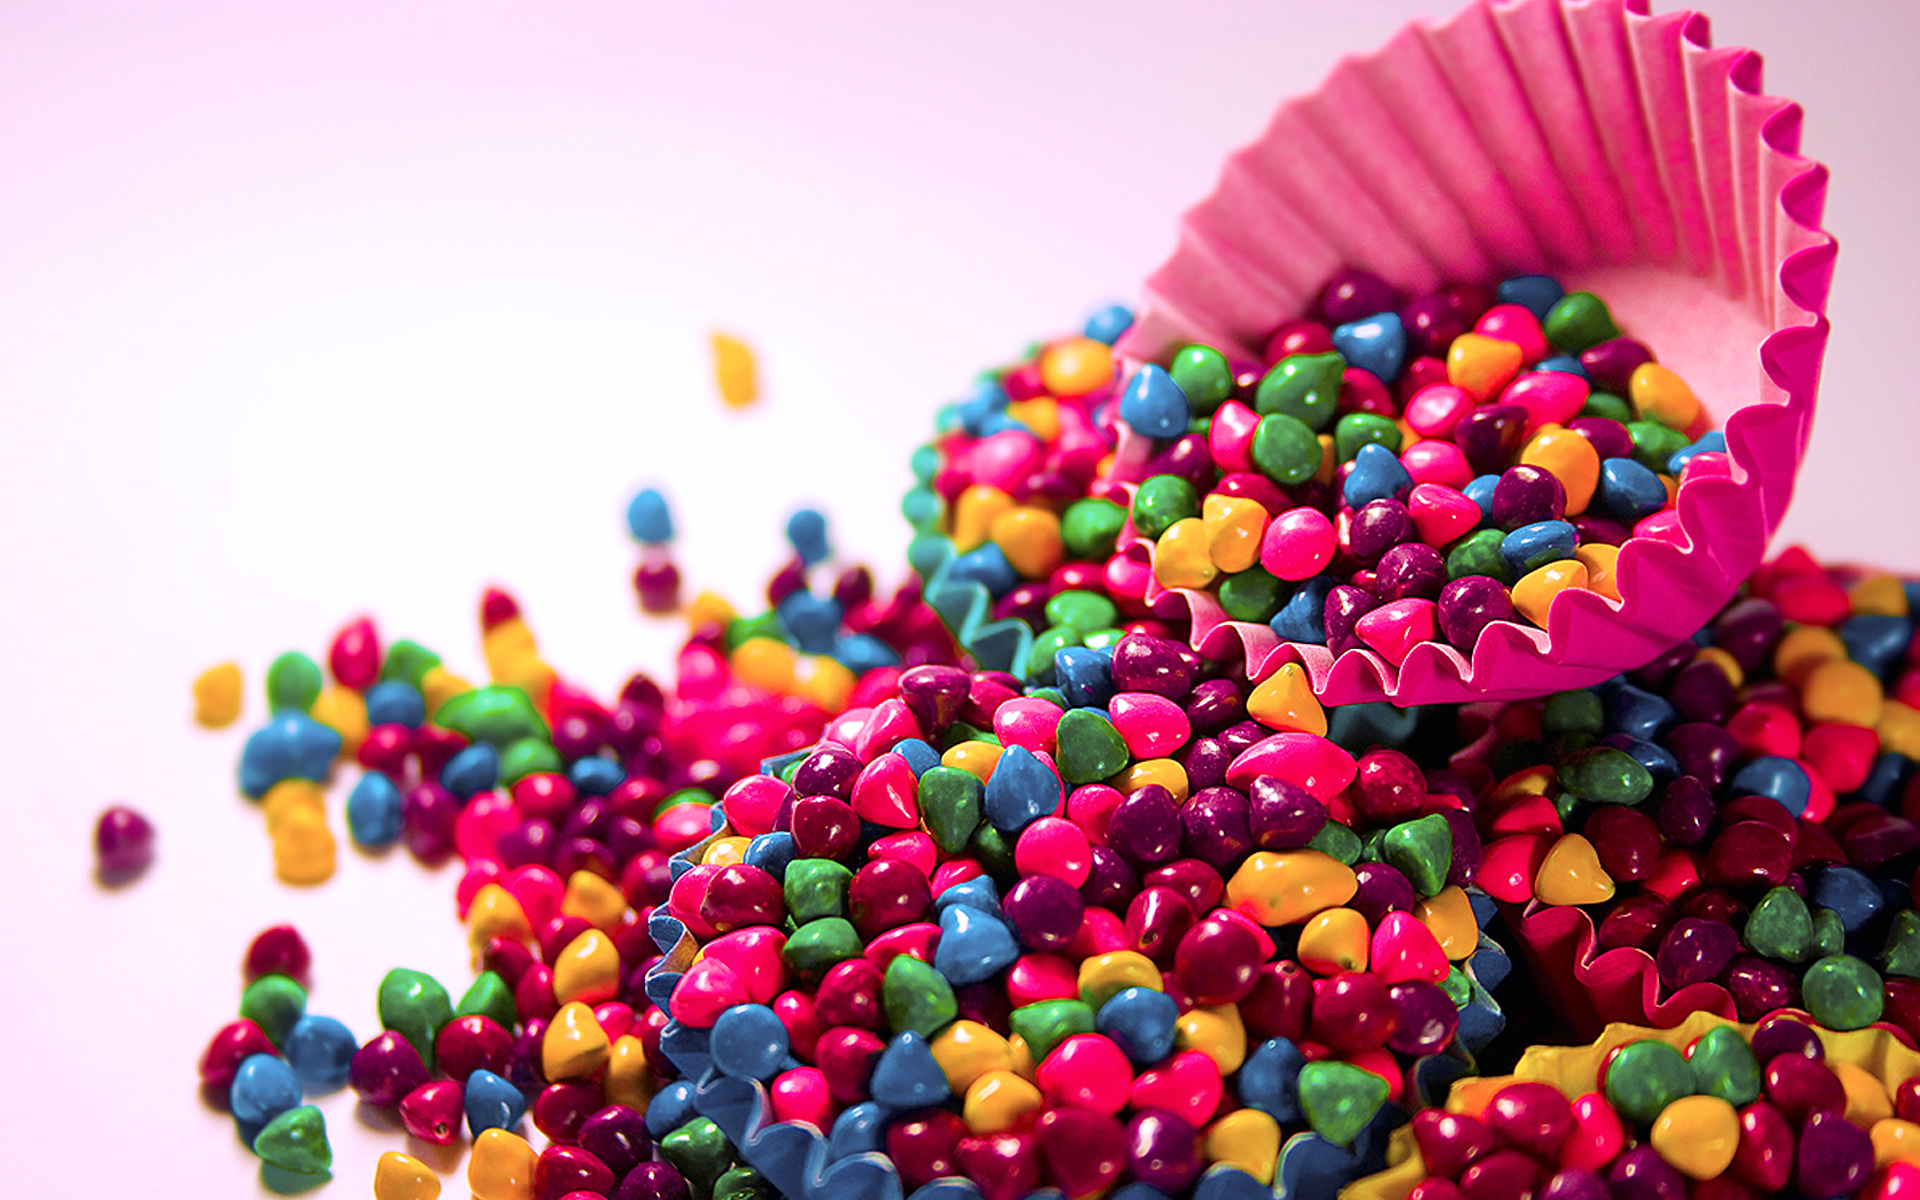 Colorful Candys6707014943 - Colorful Candys - Things, Colorful, Candys